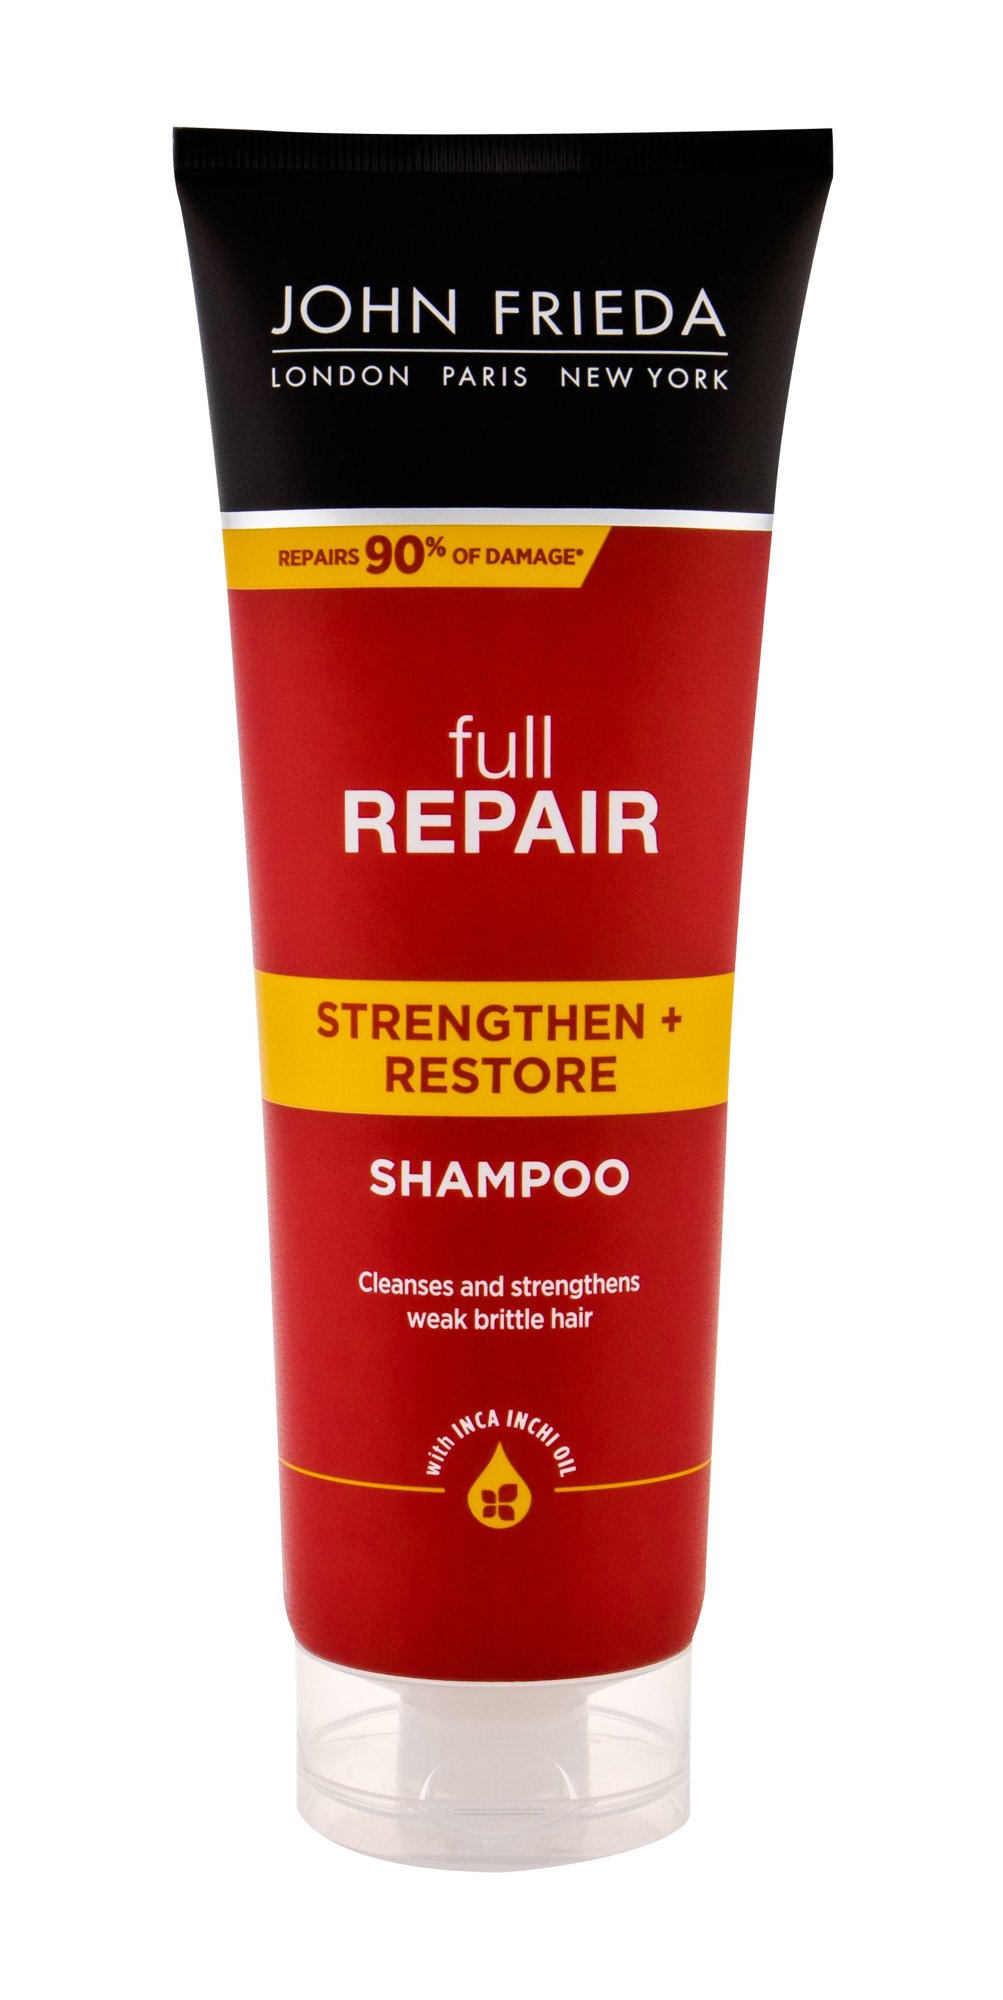 John Frieda Full Repair Shampoo 250ml  Strengthen + Restore